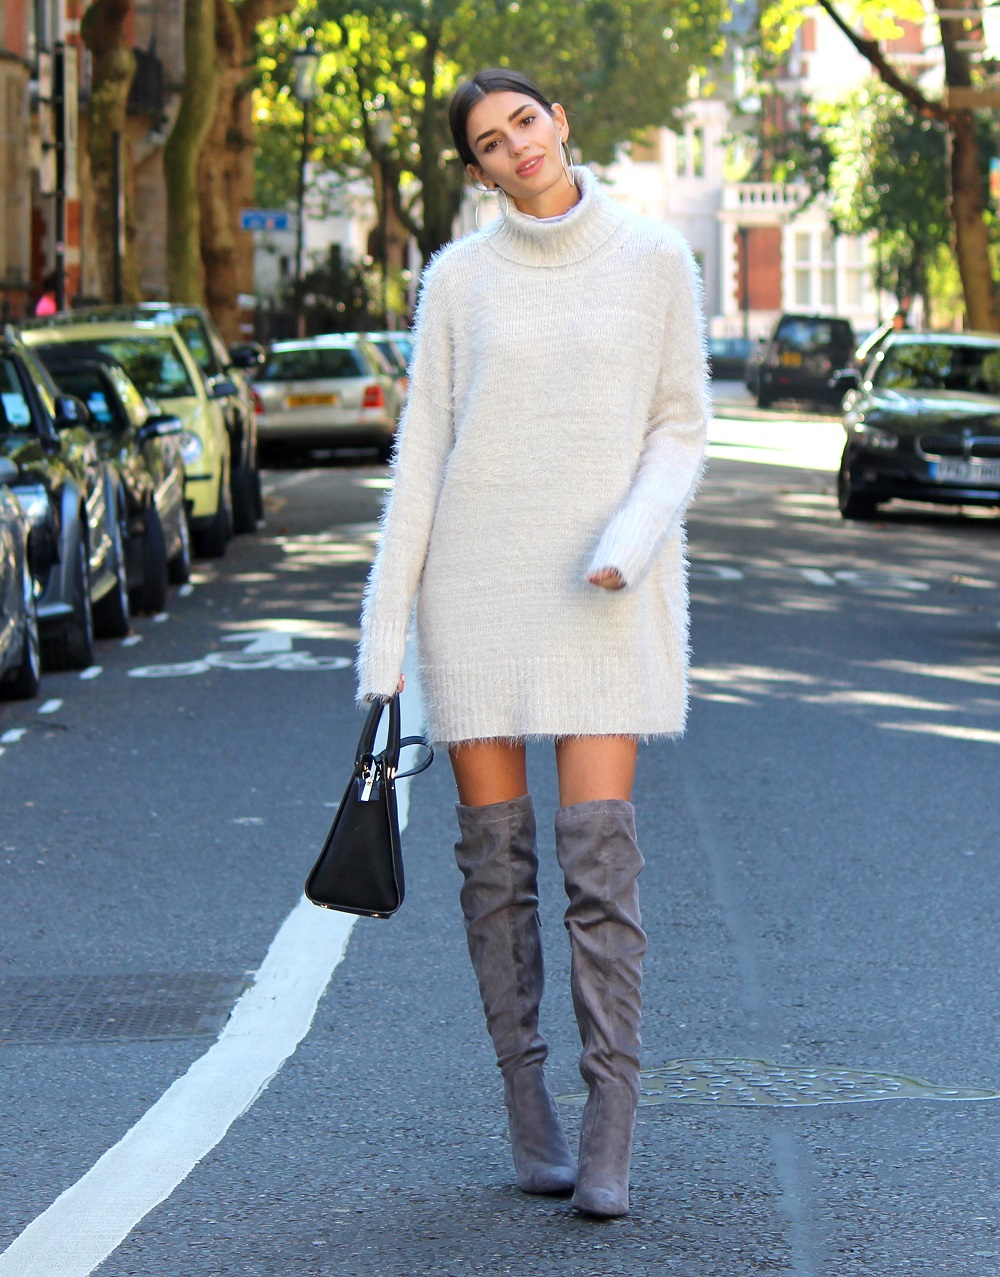 Cosy Knitwear and Knee High Boots | Peexo